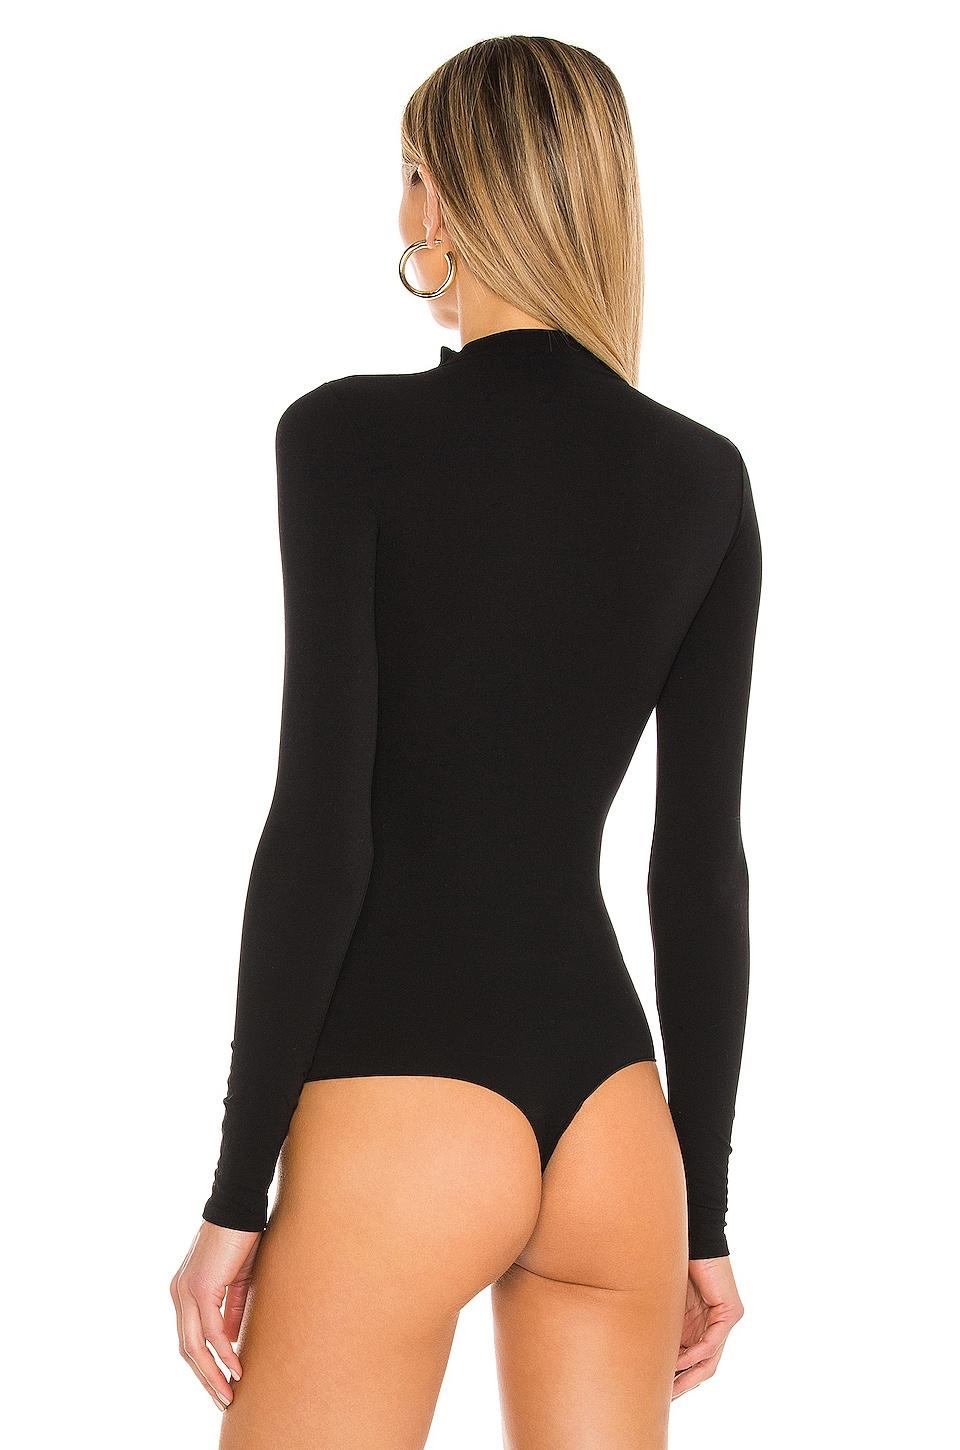 Ballet Body Thong Bodysuit, view 4, click to view large image.